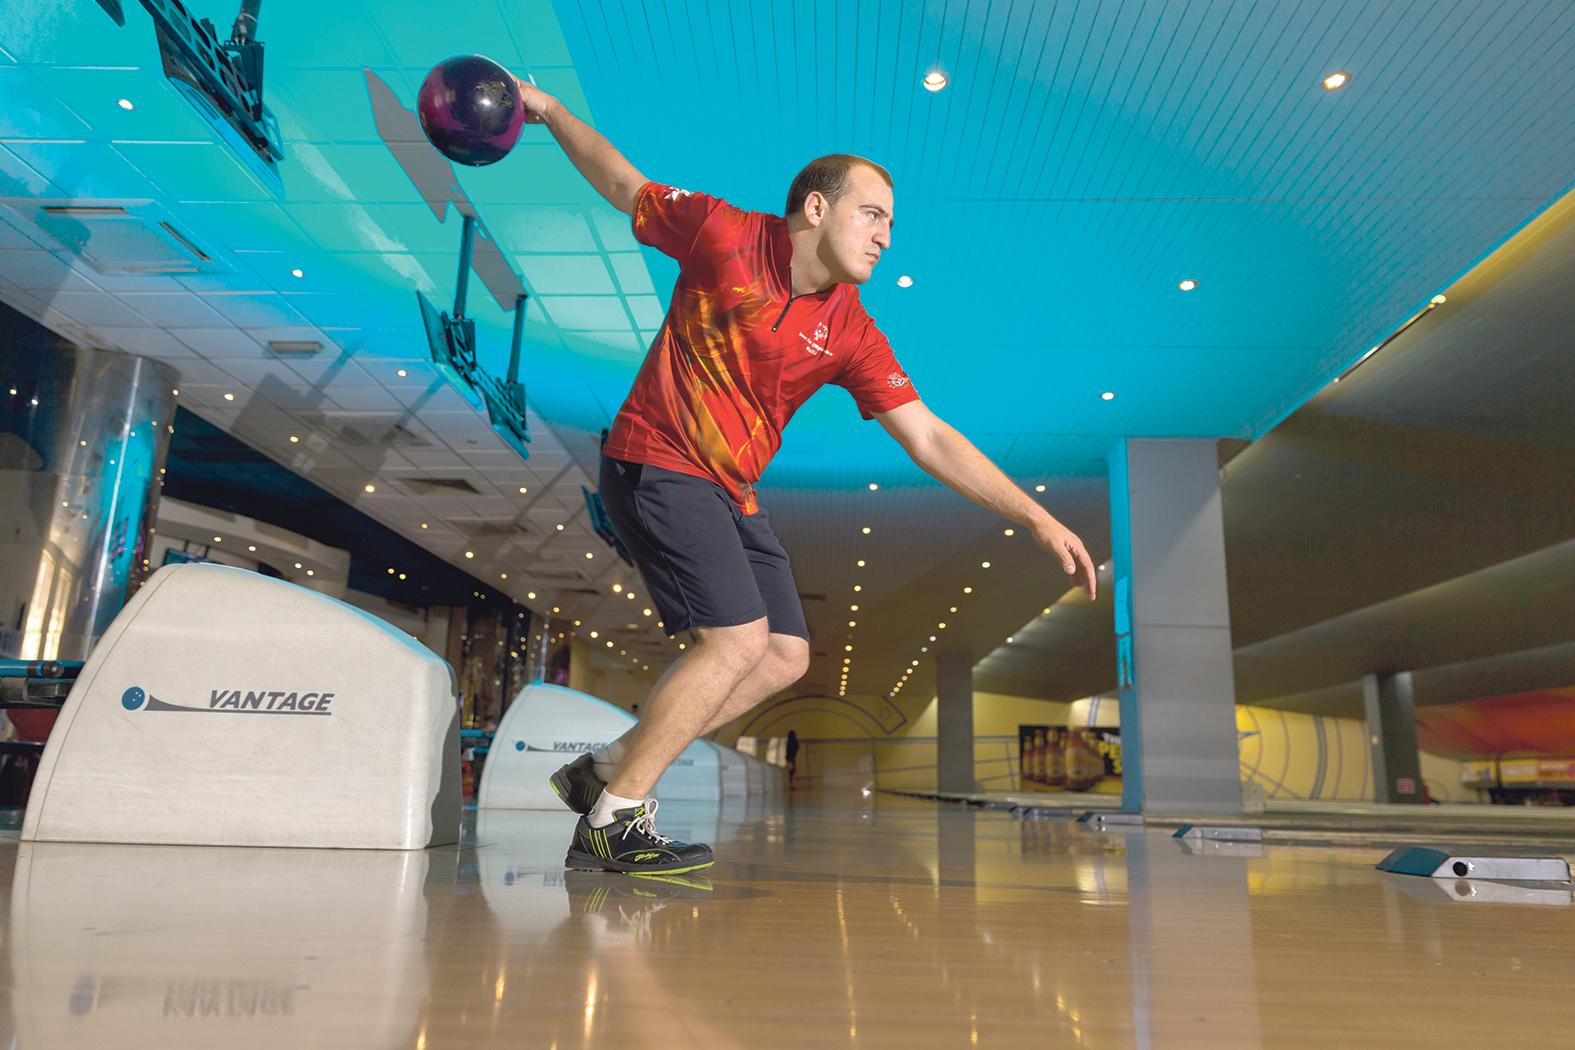 Philip Gruppetta is a Special Olympics Malta bowler who has just ranked 20th among 72 bowlers from all around the world. He works with the Armed Forces of Malta.